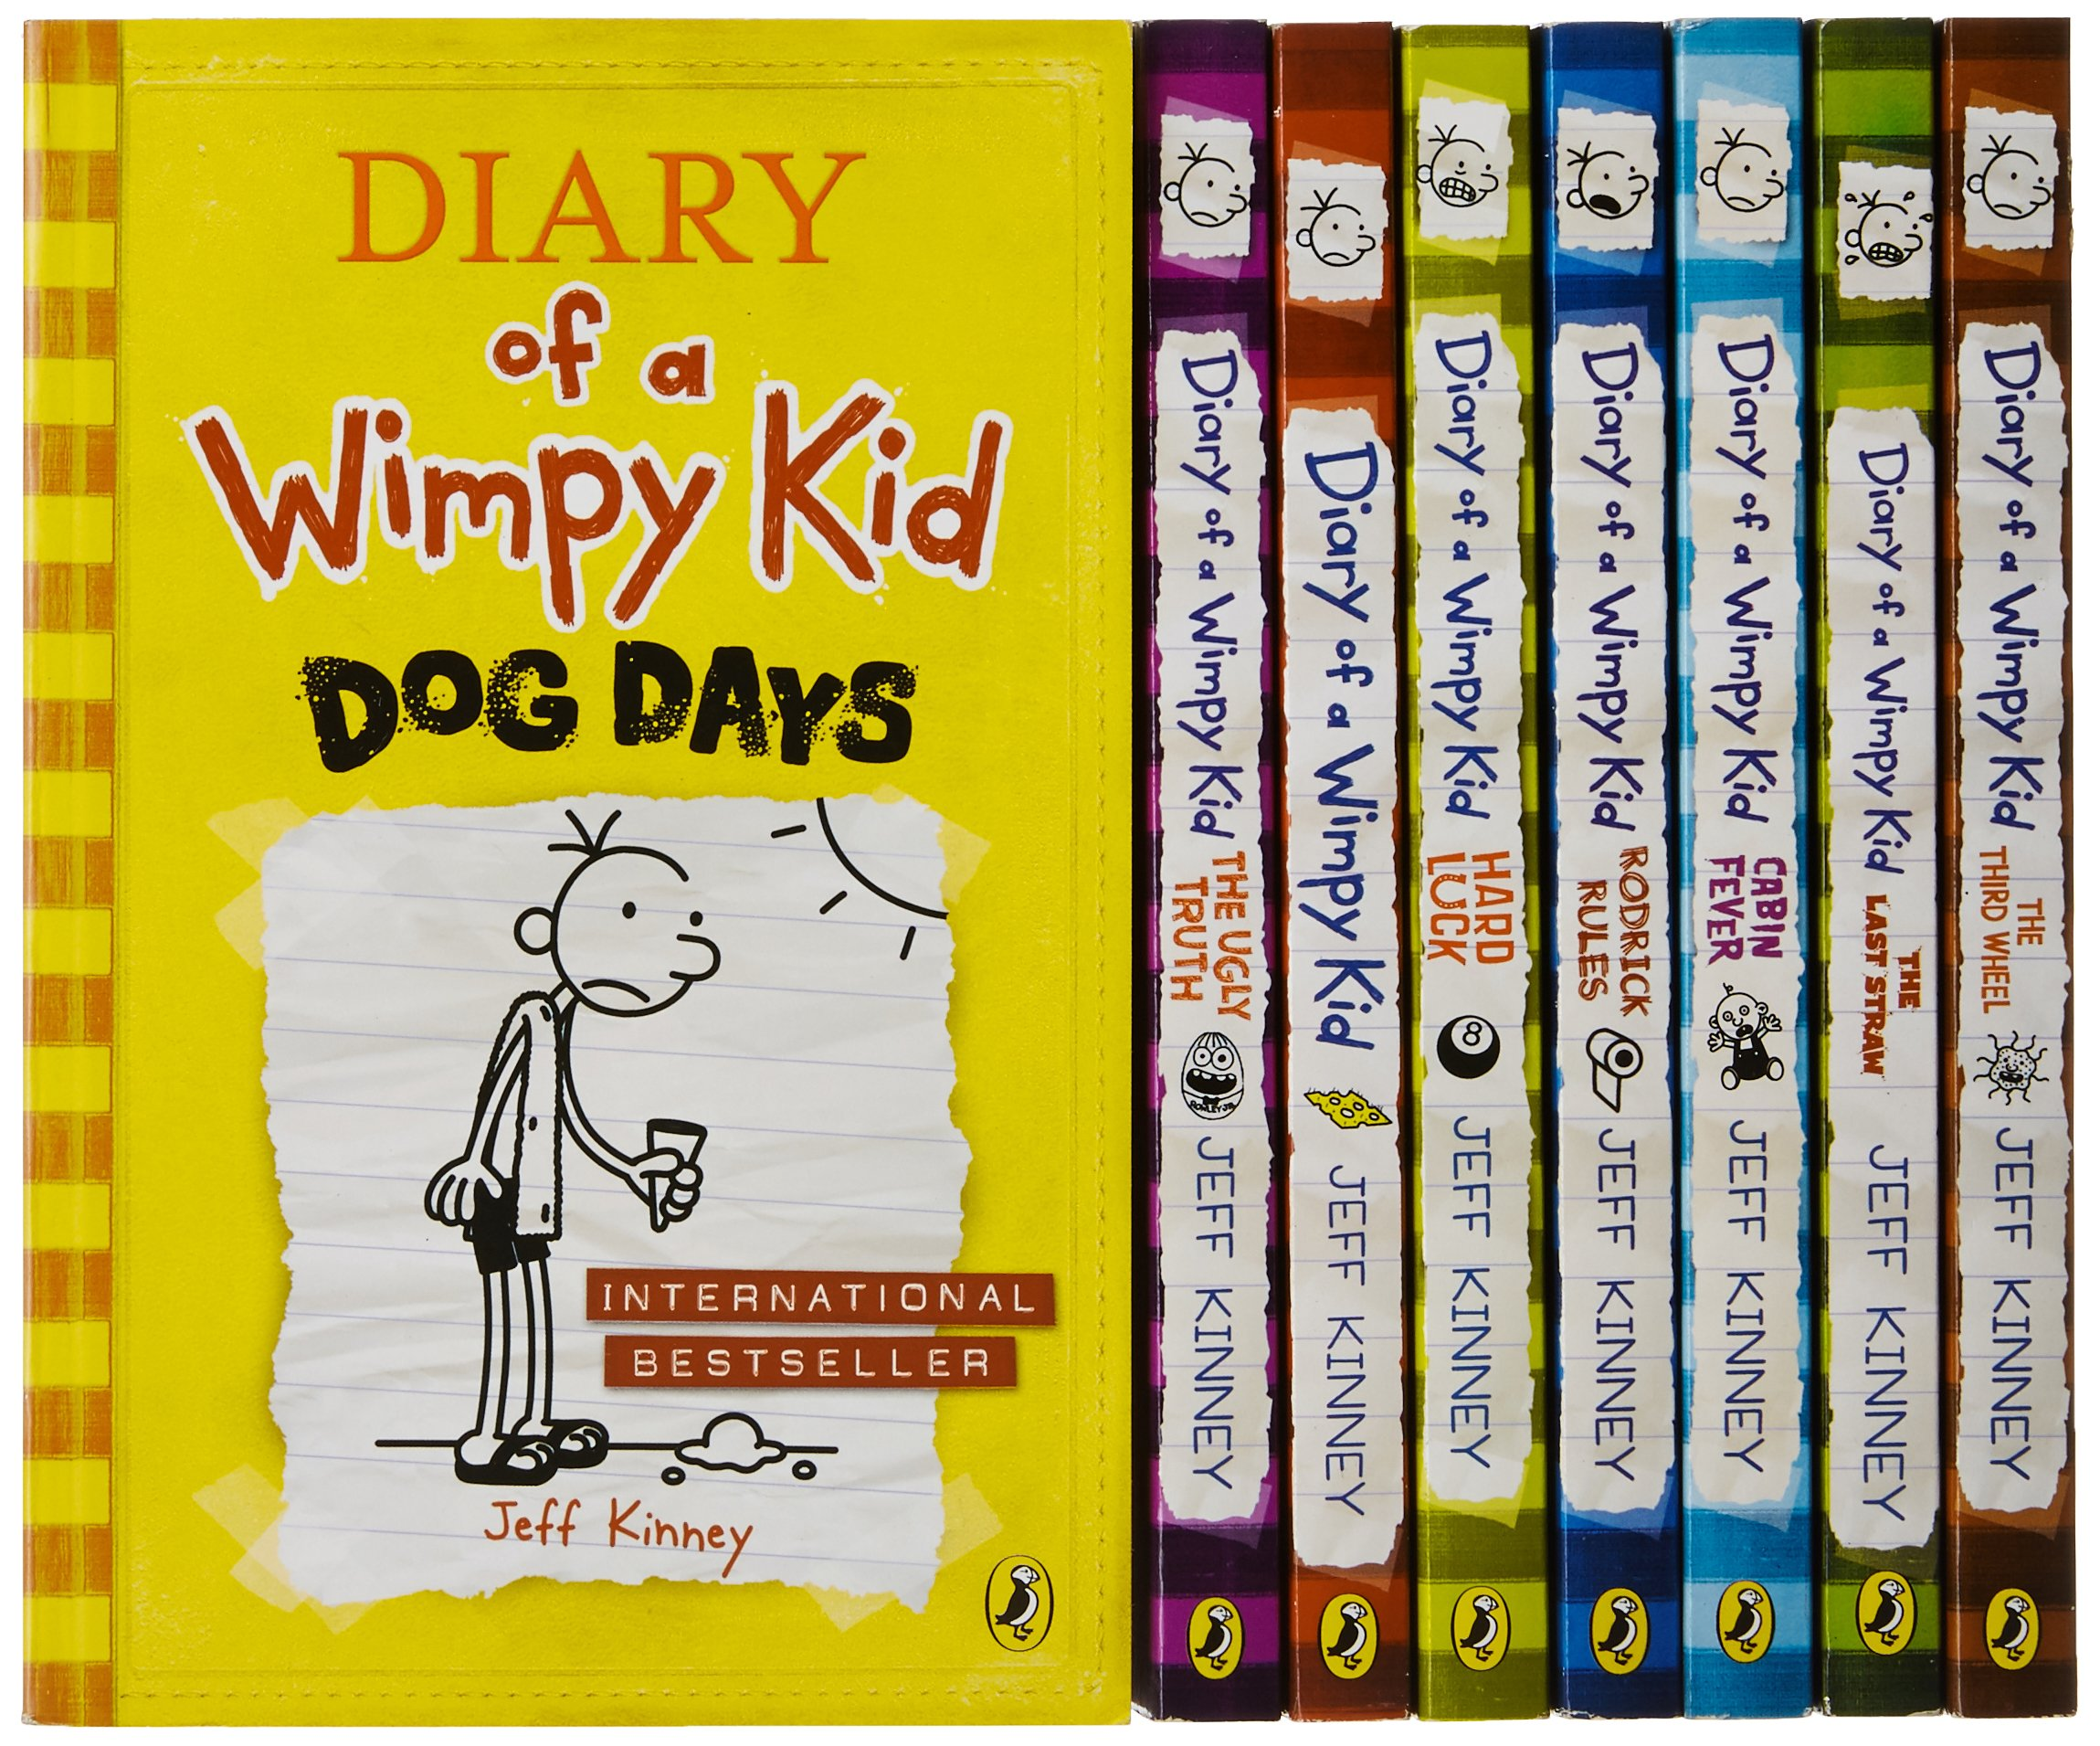 Buy diary of a wimpy kid box of books 1 8 the do it yourself book buy diary of a wimpy kid box of books 1 8 the do it yourself book book online at low prices in india diary of a wimpy kid box of books 1 8 solutioingenieria Images